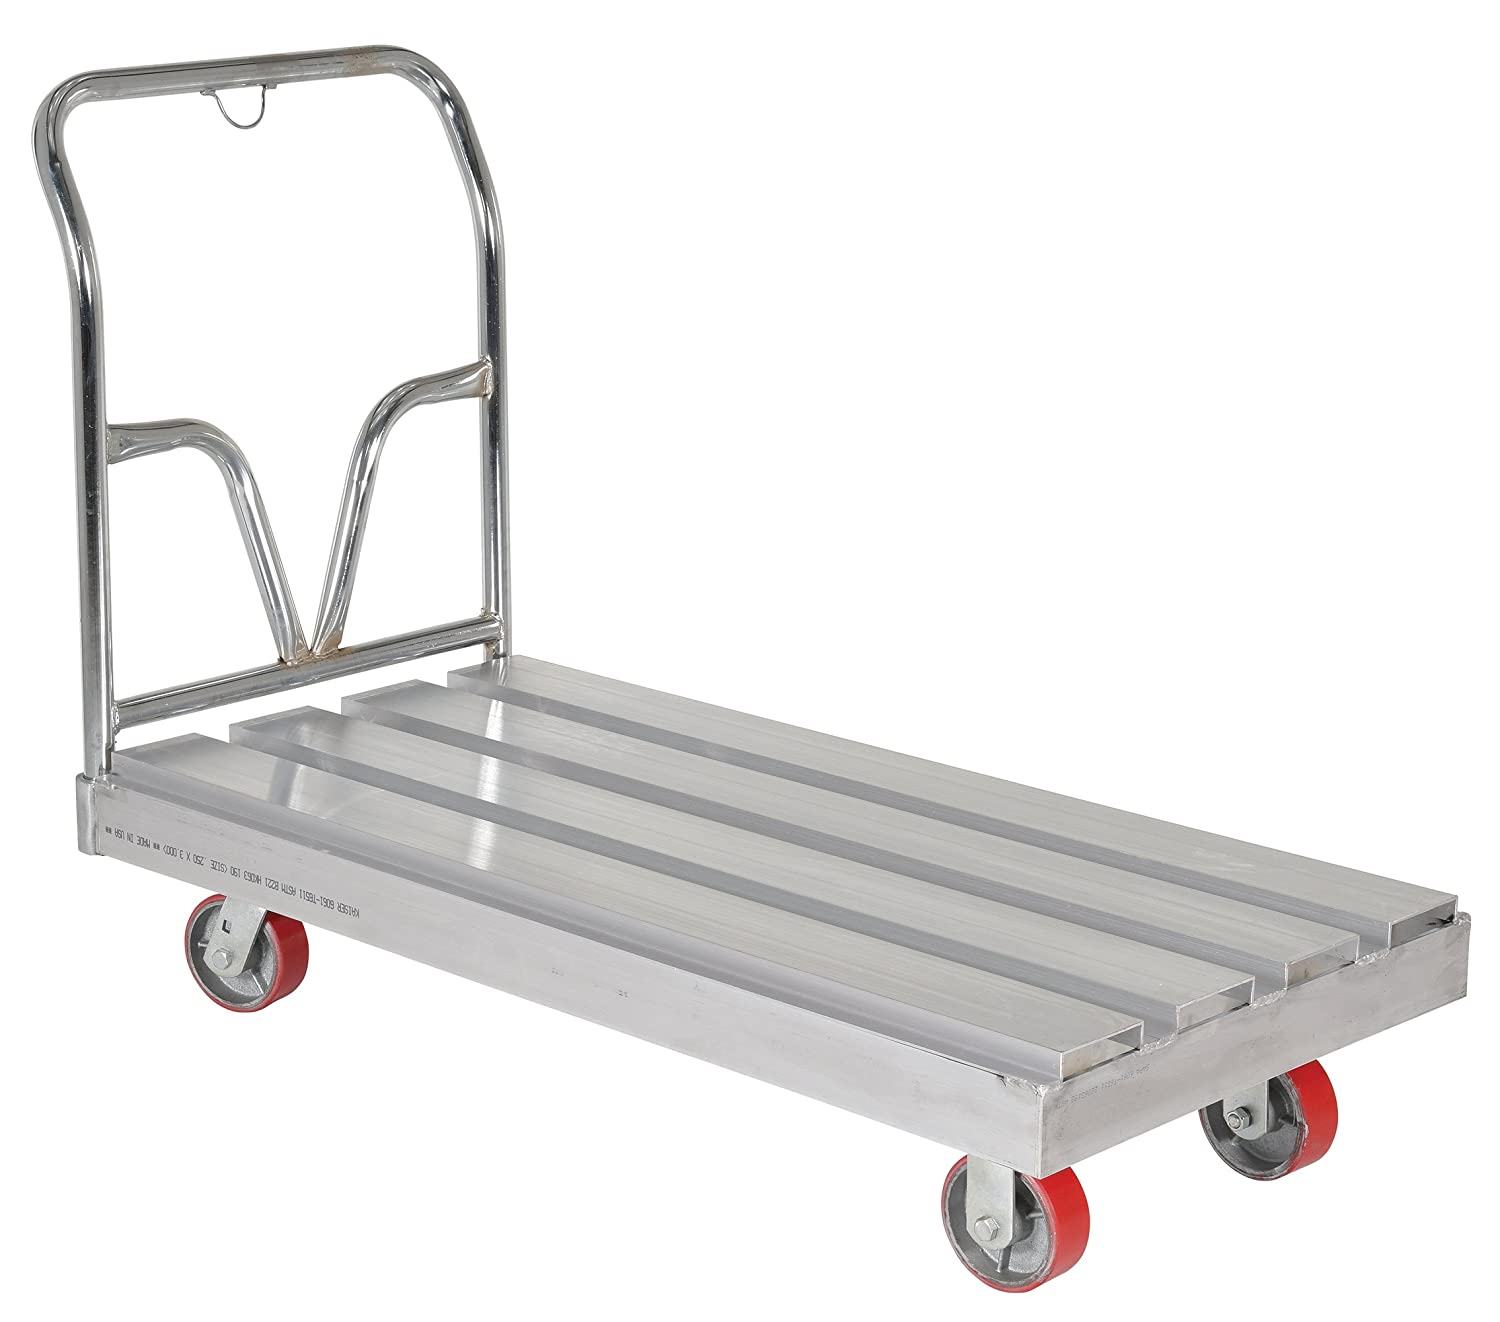 Vestil Sdd 2448 Aluminum Platform Truck 3600 Lb Capacity 10 5 8 Deck Height 23 1 4 Handle Width 5 X 2 Poly On Steel Casters 24 X 48 Utility Carts Amazon Com Industrial Scientific